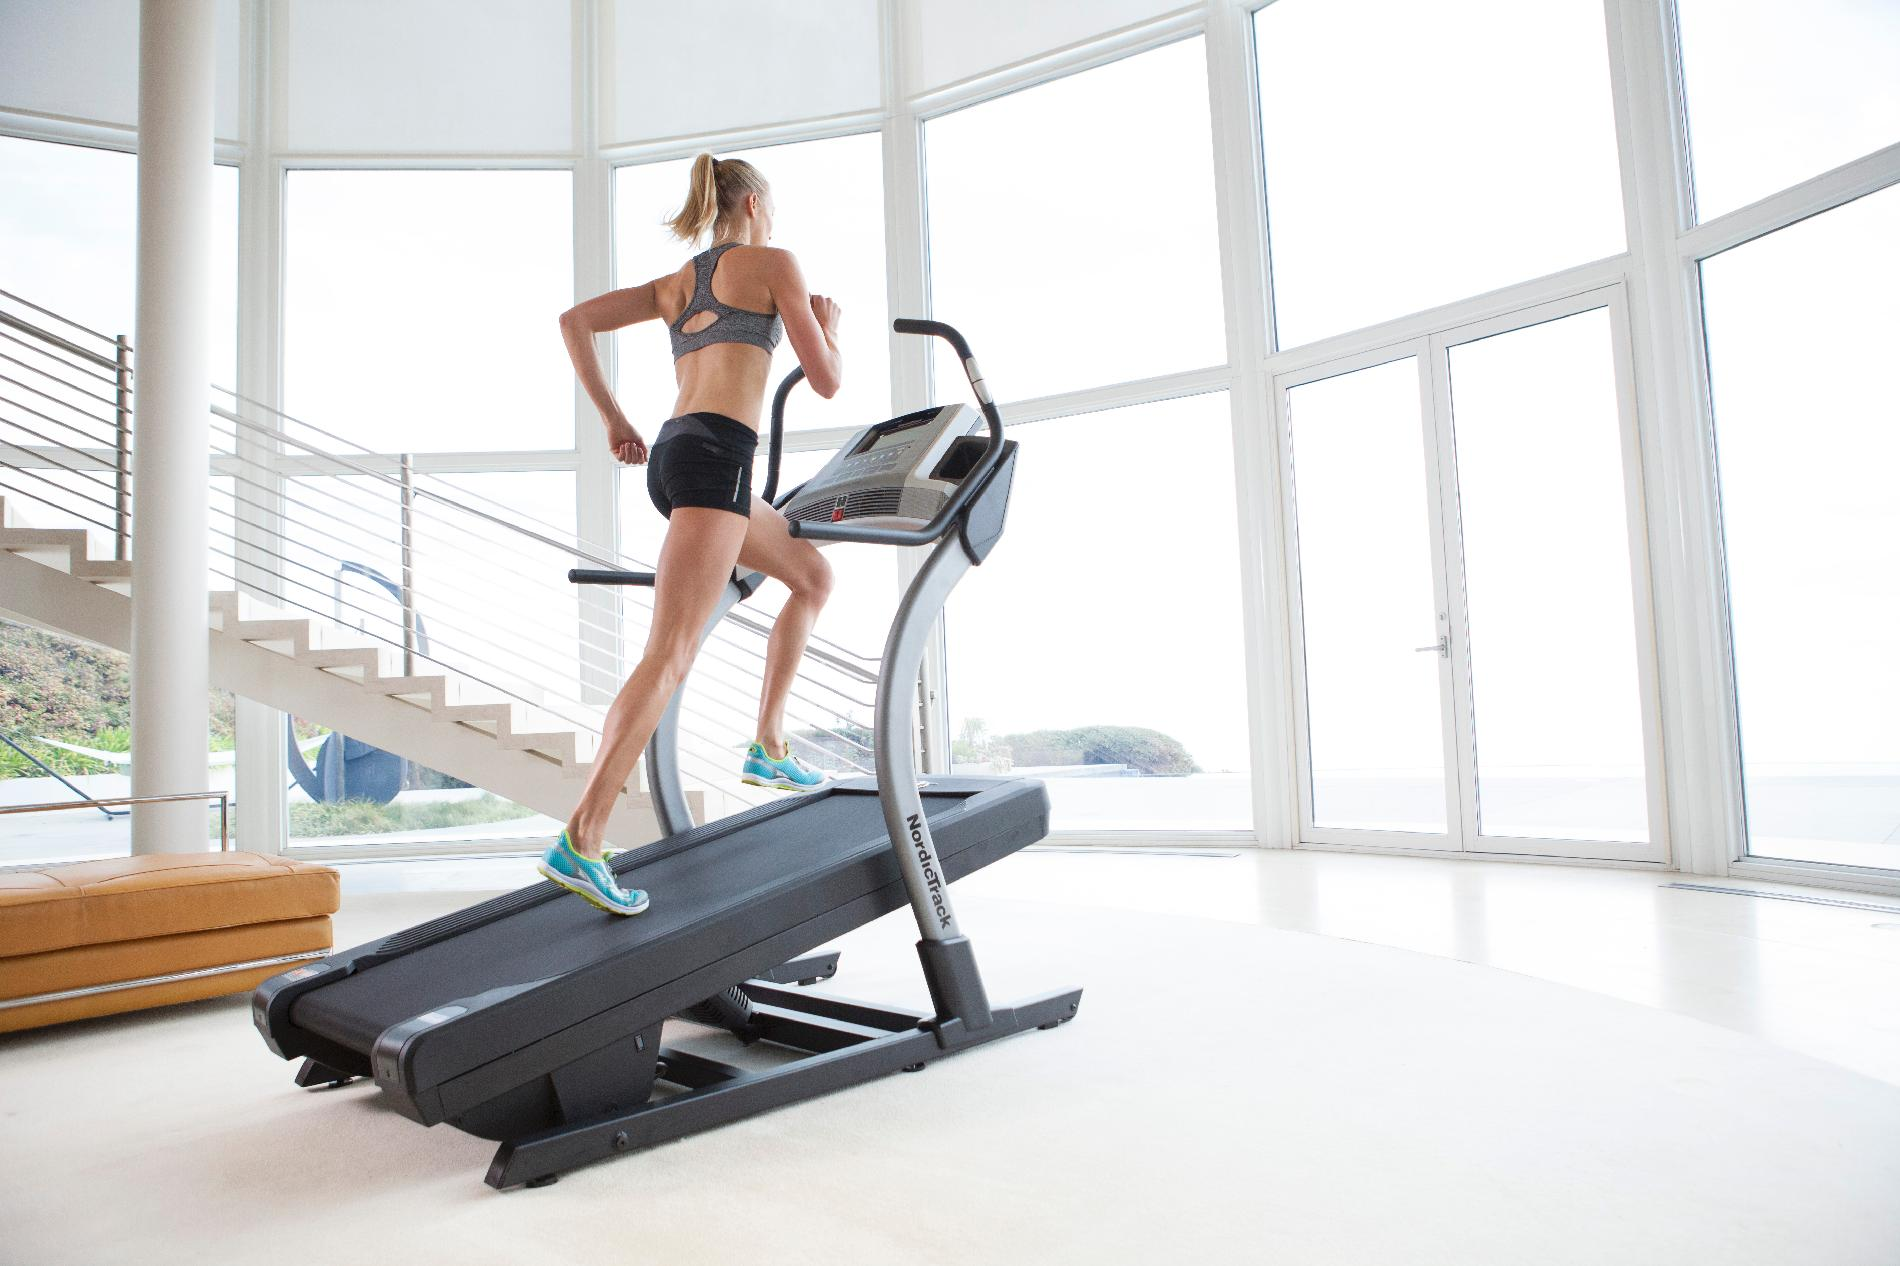 NordicTrack X 9i Incline Trainer